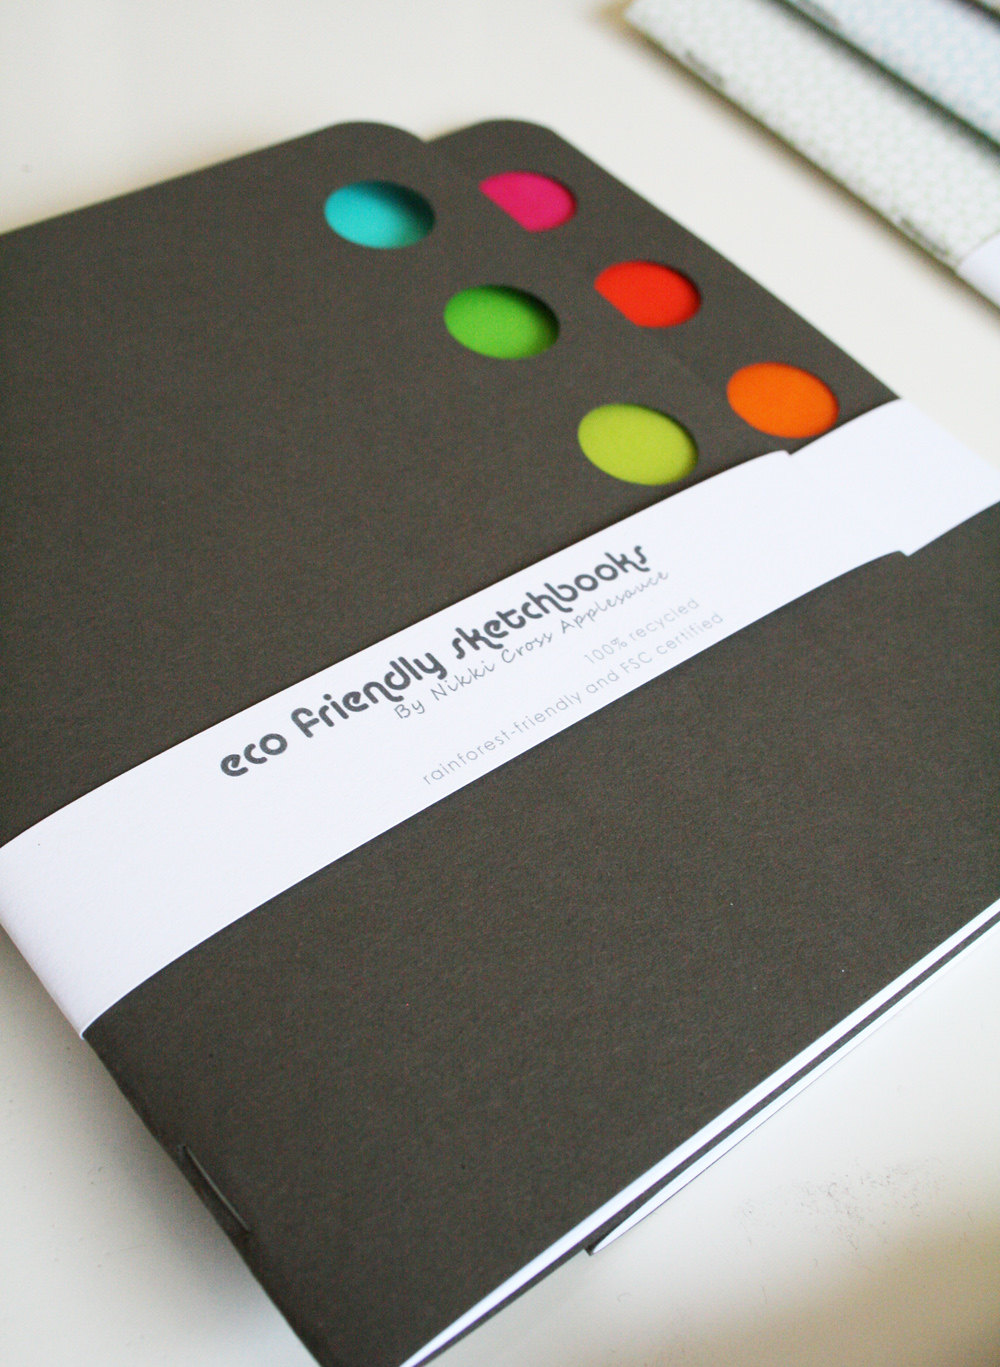 Eco Friendly Sketchbook with vibrant vellum accents